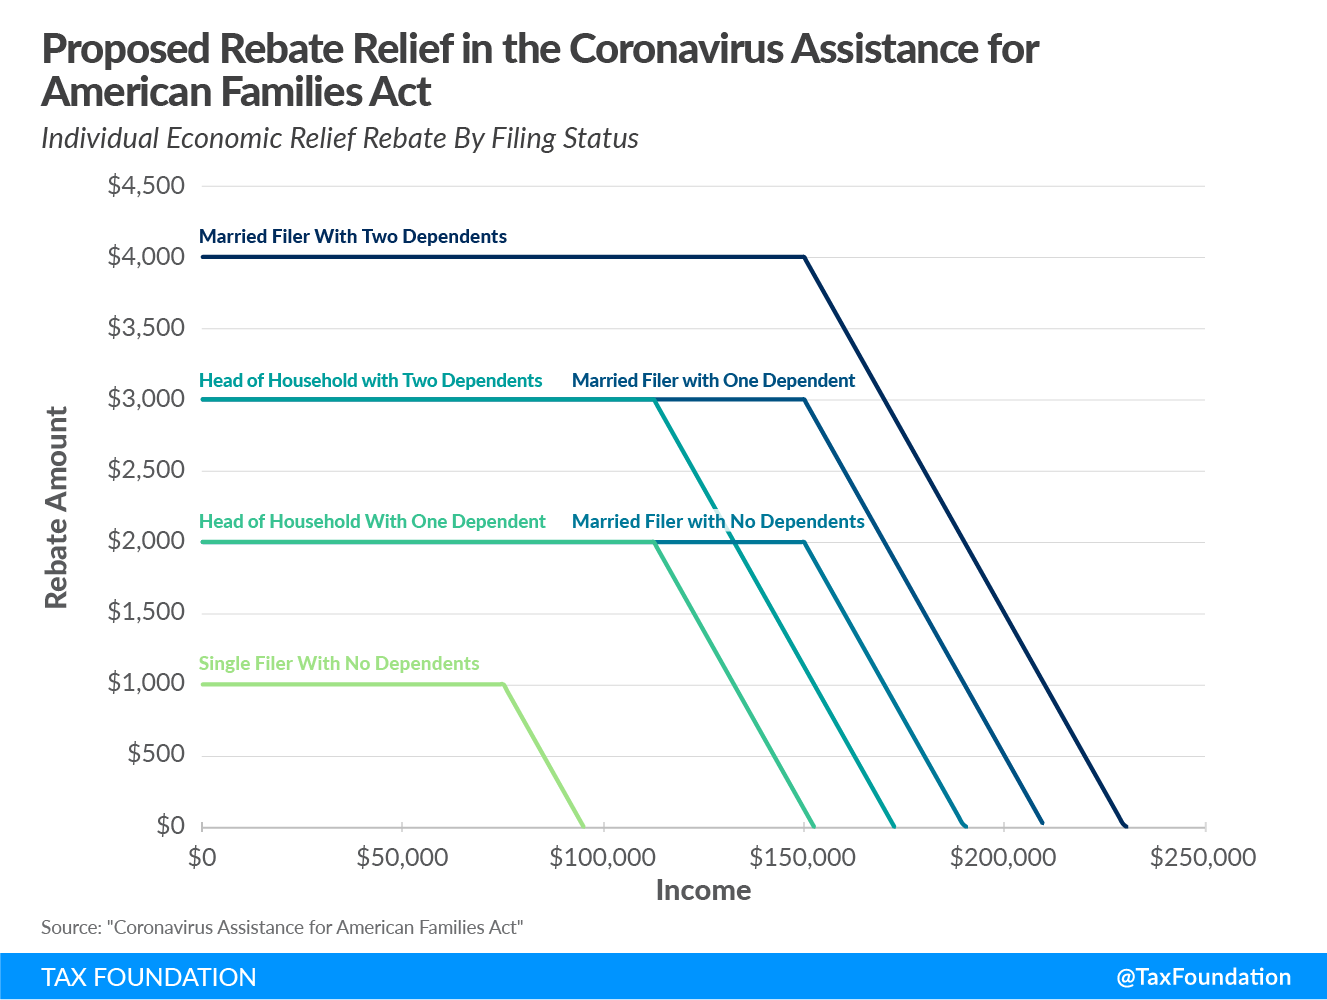 Coronavirus Assistance for American Families Act, $1,000 stimulus checks, second round of stimulus checks, Bill Cassidy, Steve Daines, Mitt Romney, Marco Rubio